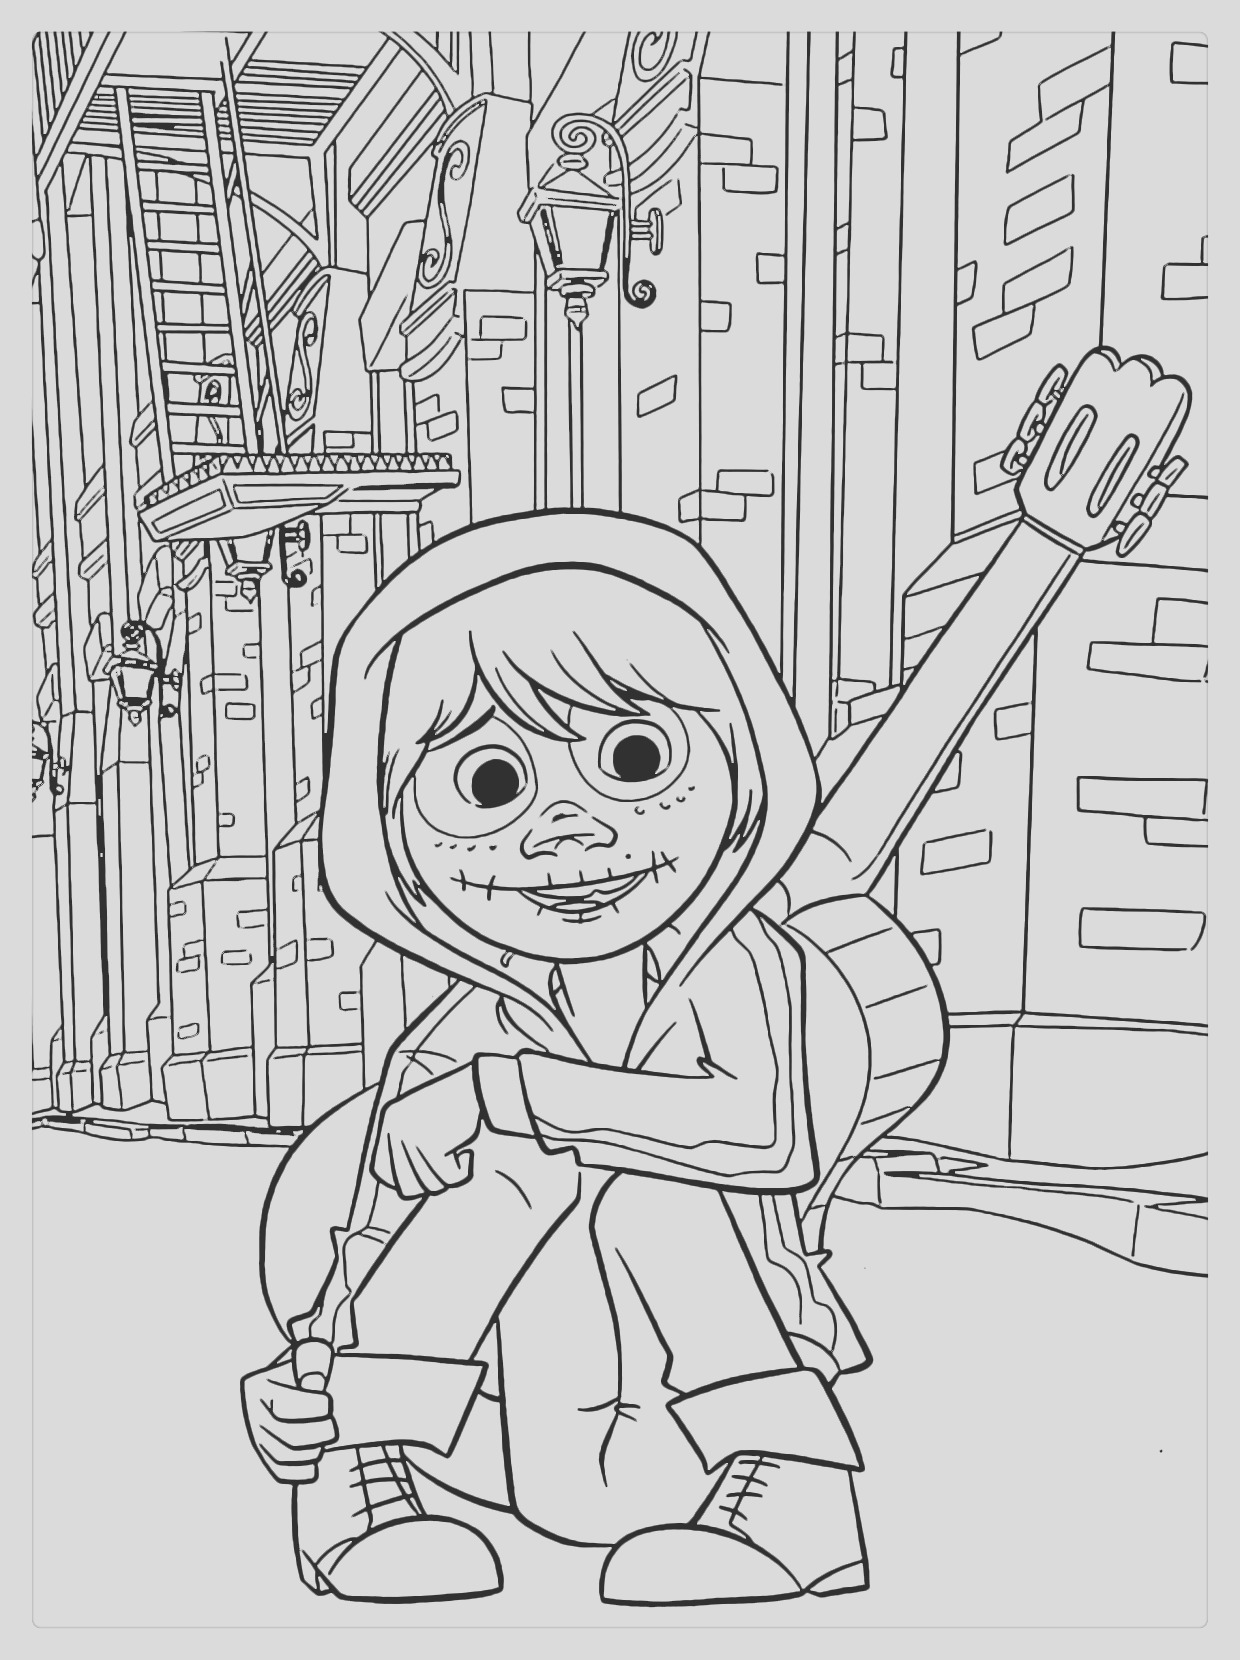 coco coloring pages miguel lineart free